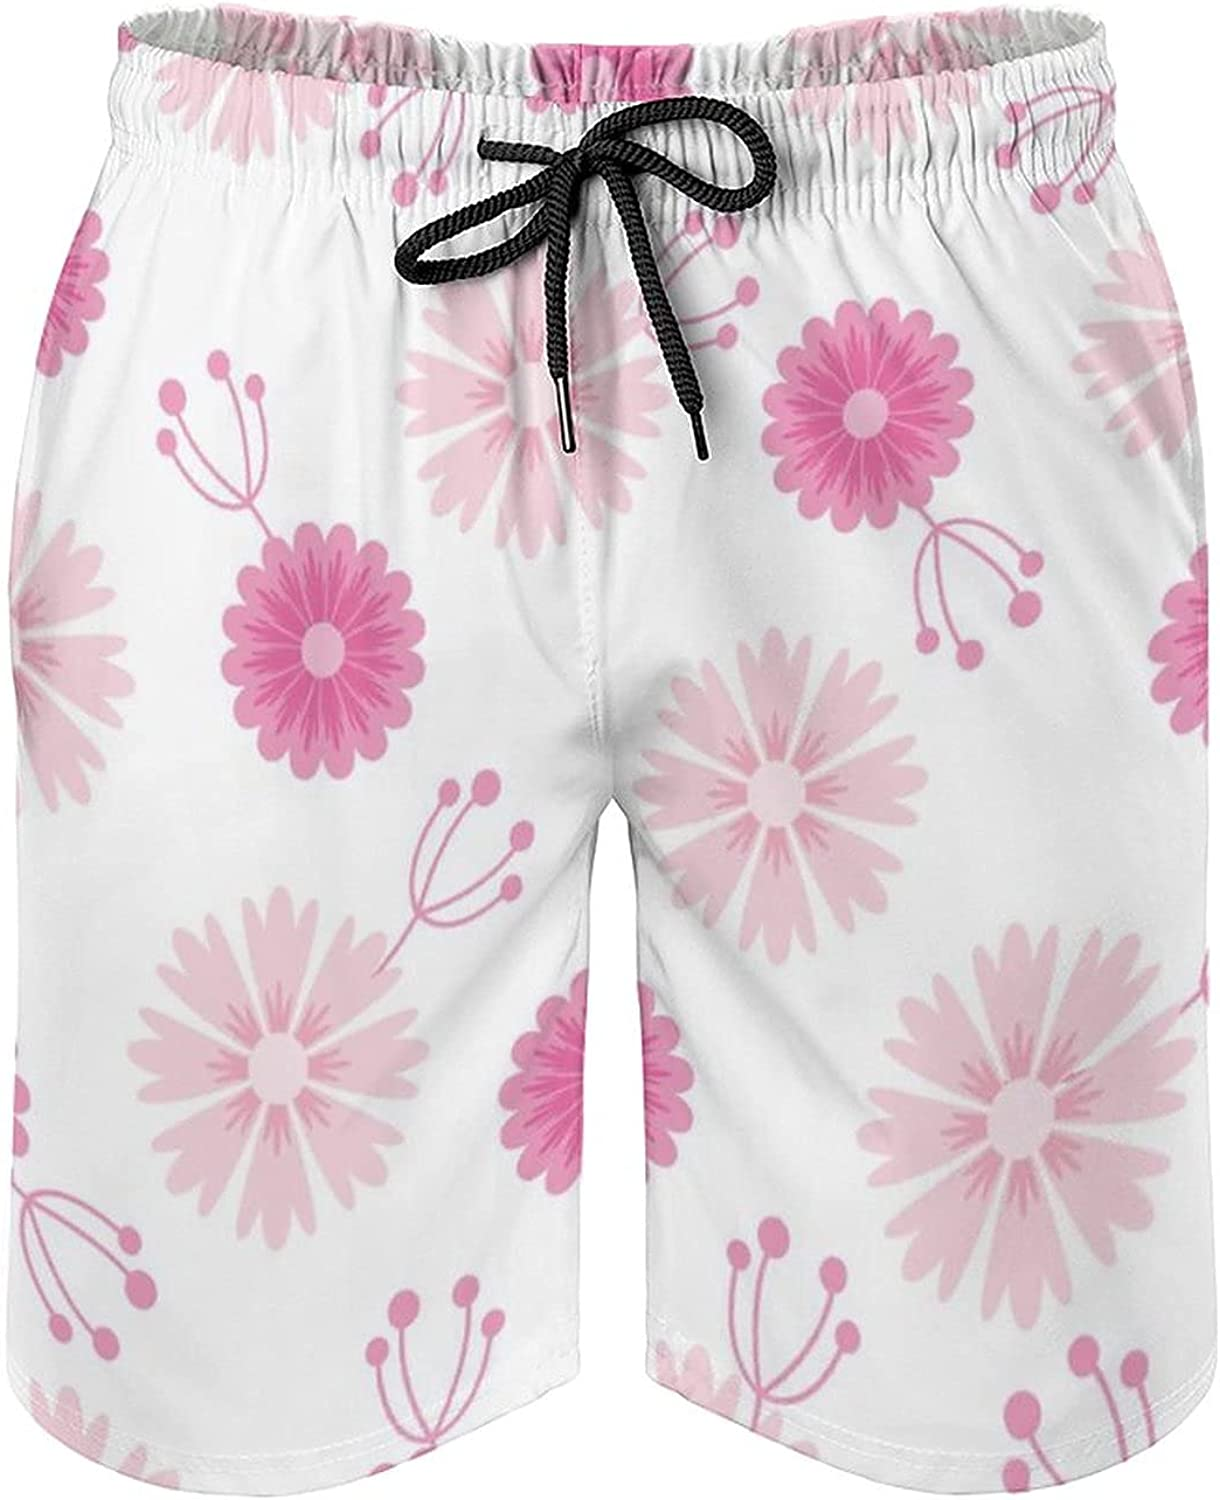 by Unbranded Men's Fashion Summer Soft Board Shorts 3 Wild Flowers